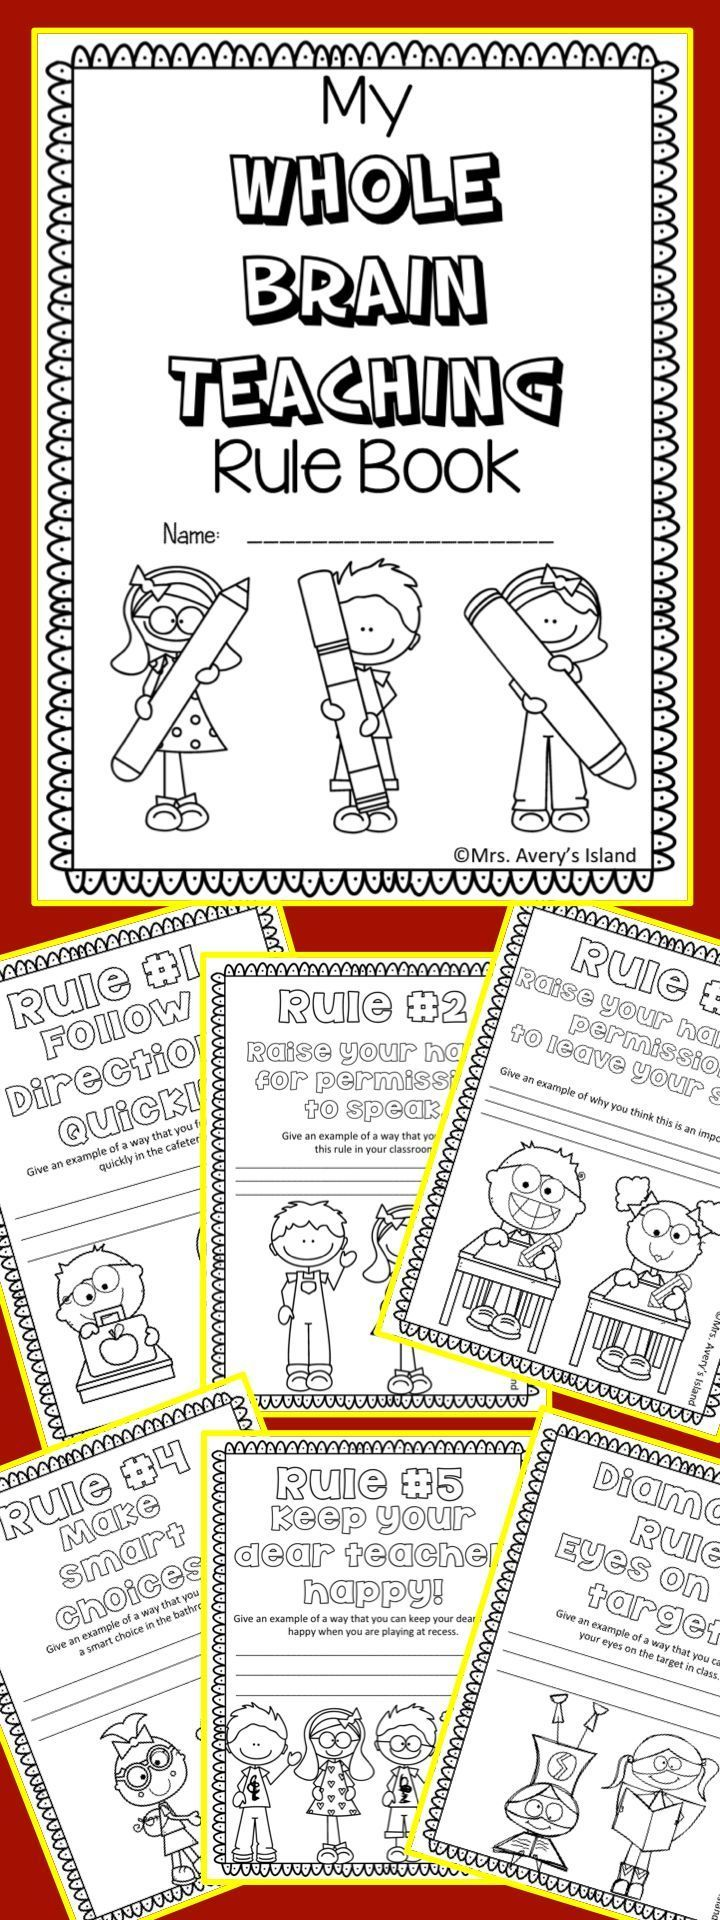 WHOLE BRAIN TEACHING FREEBIE - Click here to download this Whole Brain Teaching rules booklet! Classroom management is about to be taken to a whole new level by teaching your students these fun classroom rules!